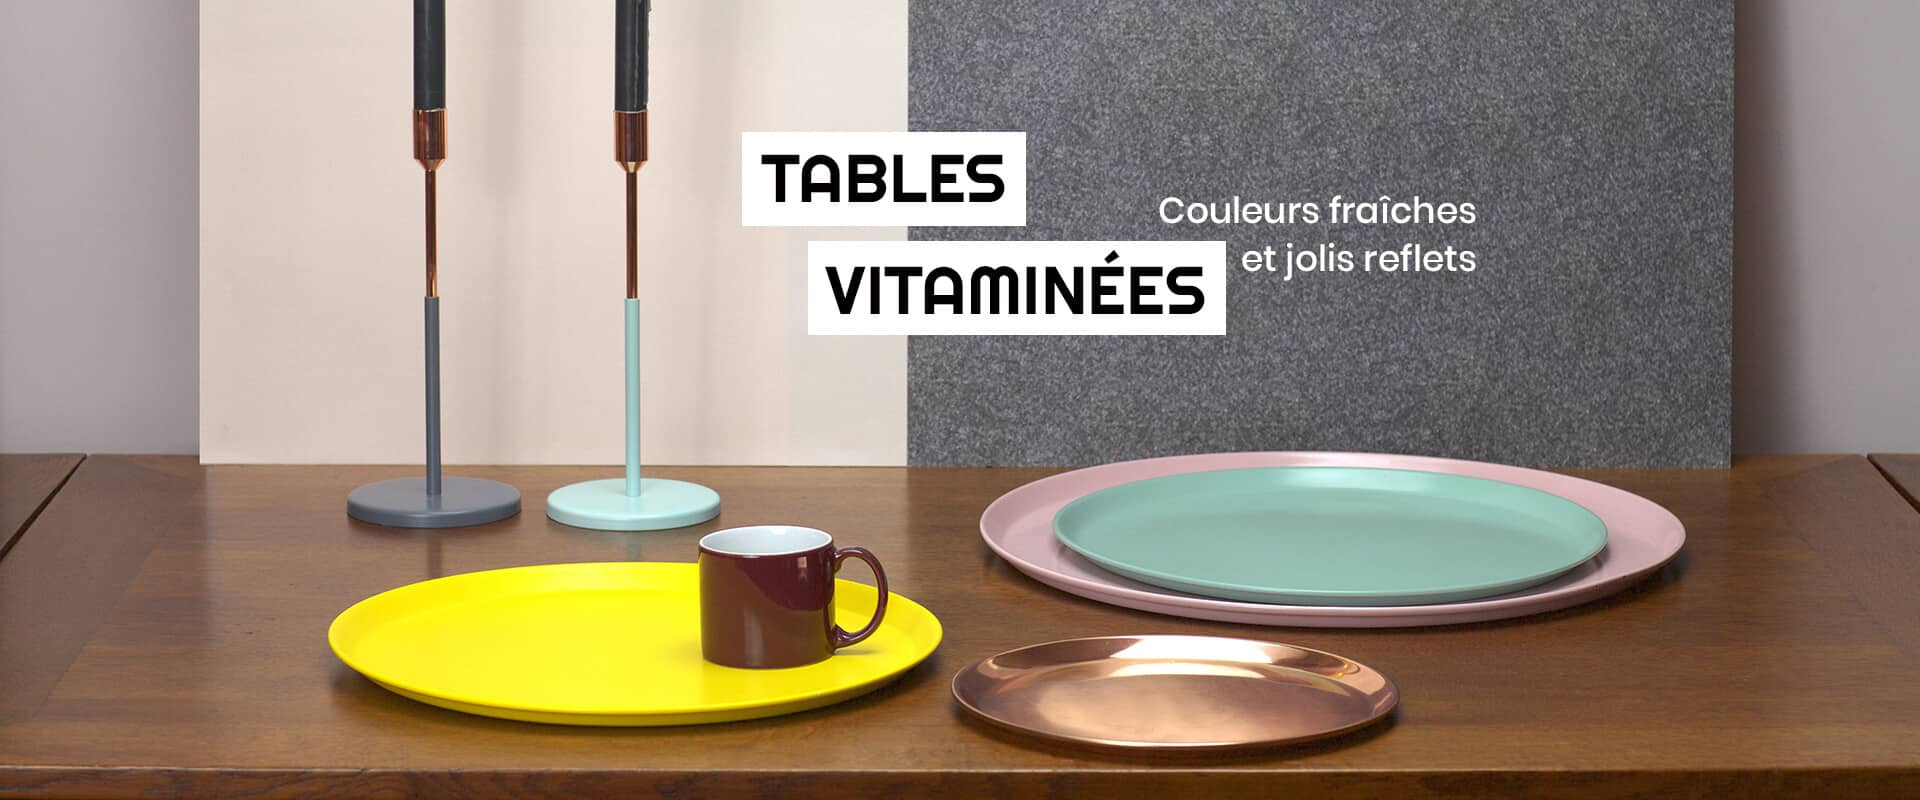 tables vitaminees zeeloft